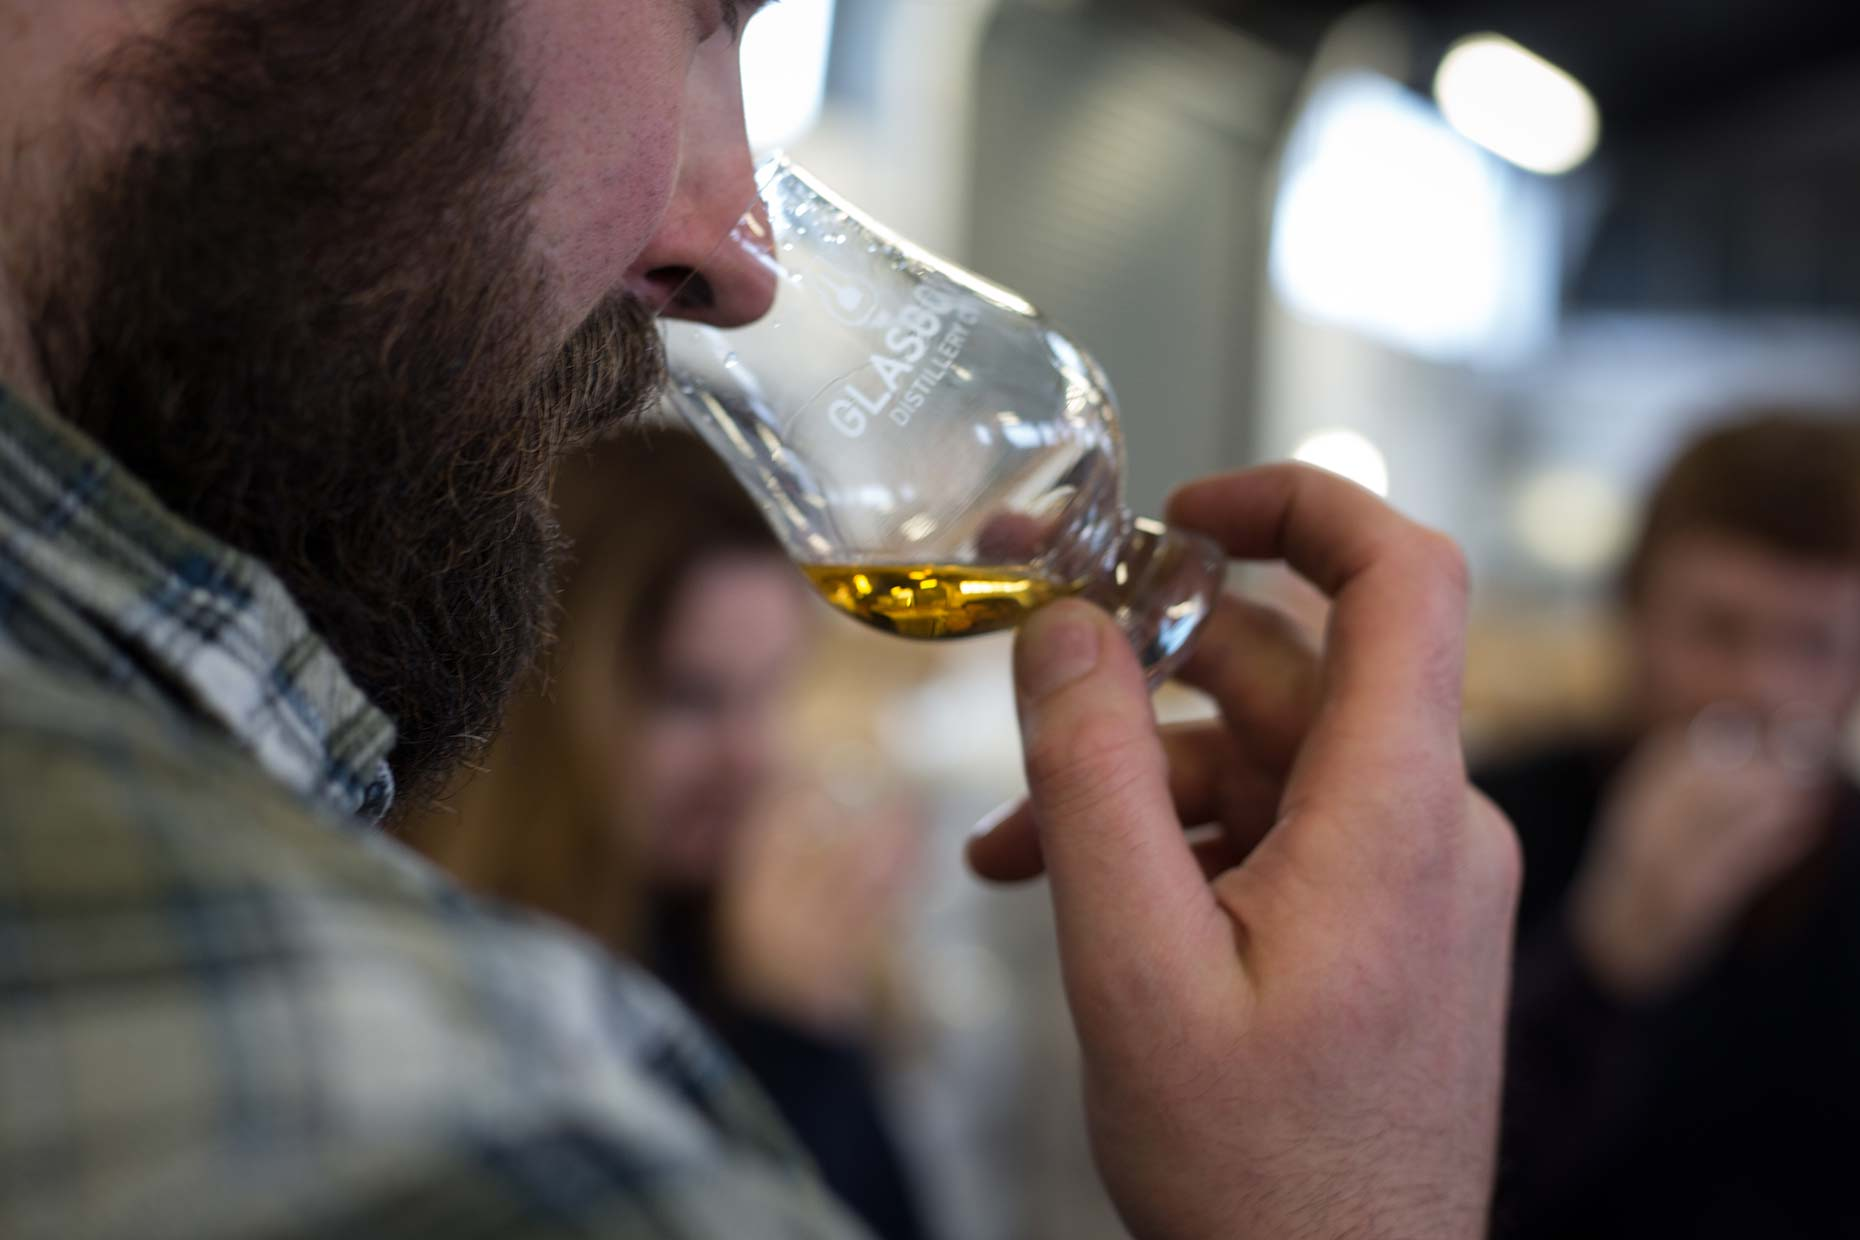 Nosing a dram of Scottish single malt whisky, Scotland